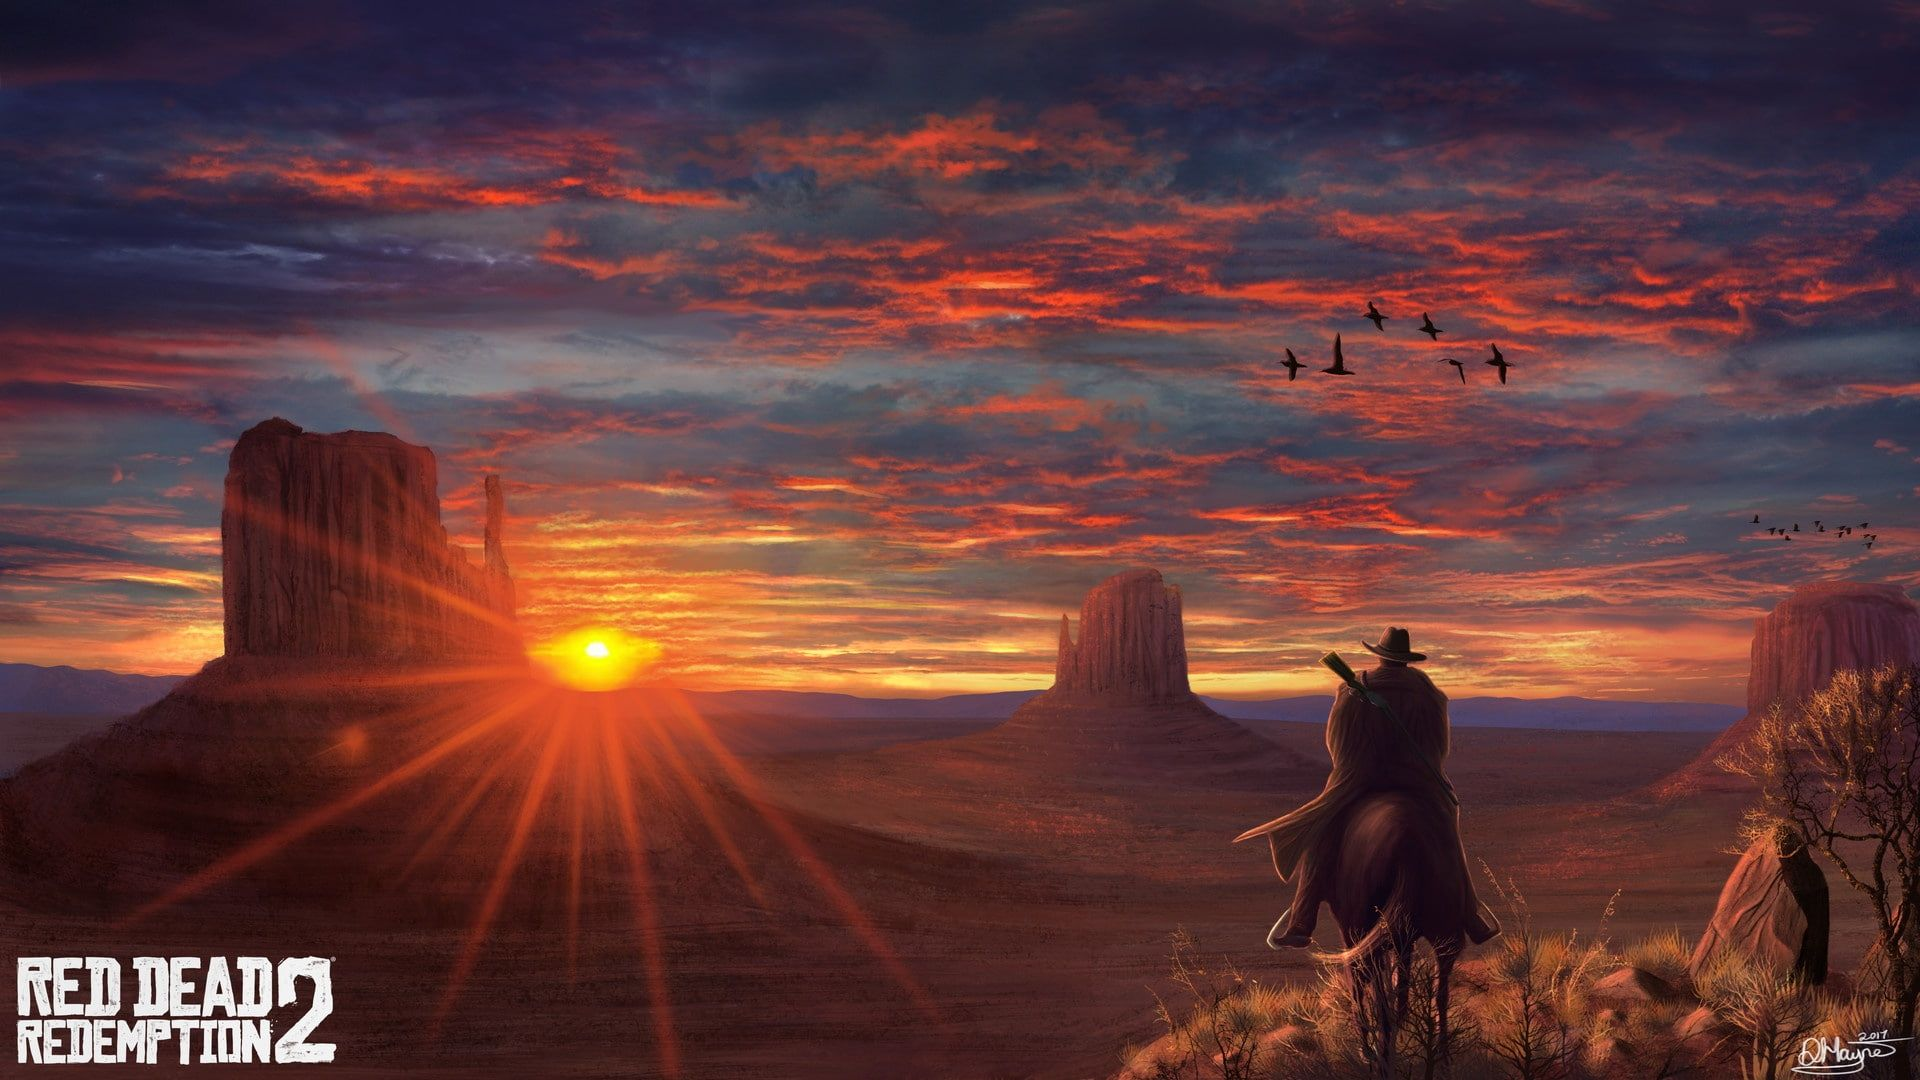 Sunset The Game Art Rockstar Concept Art Cowboy Western Game Art Red Dead Redemption 2 Red Dead Redemption Art Red Dead Redemption Red Dead Redemption Ii